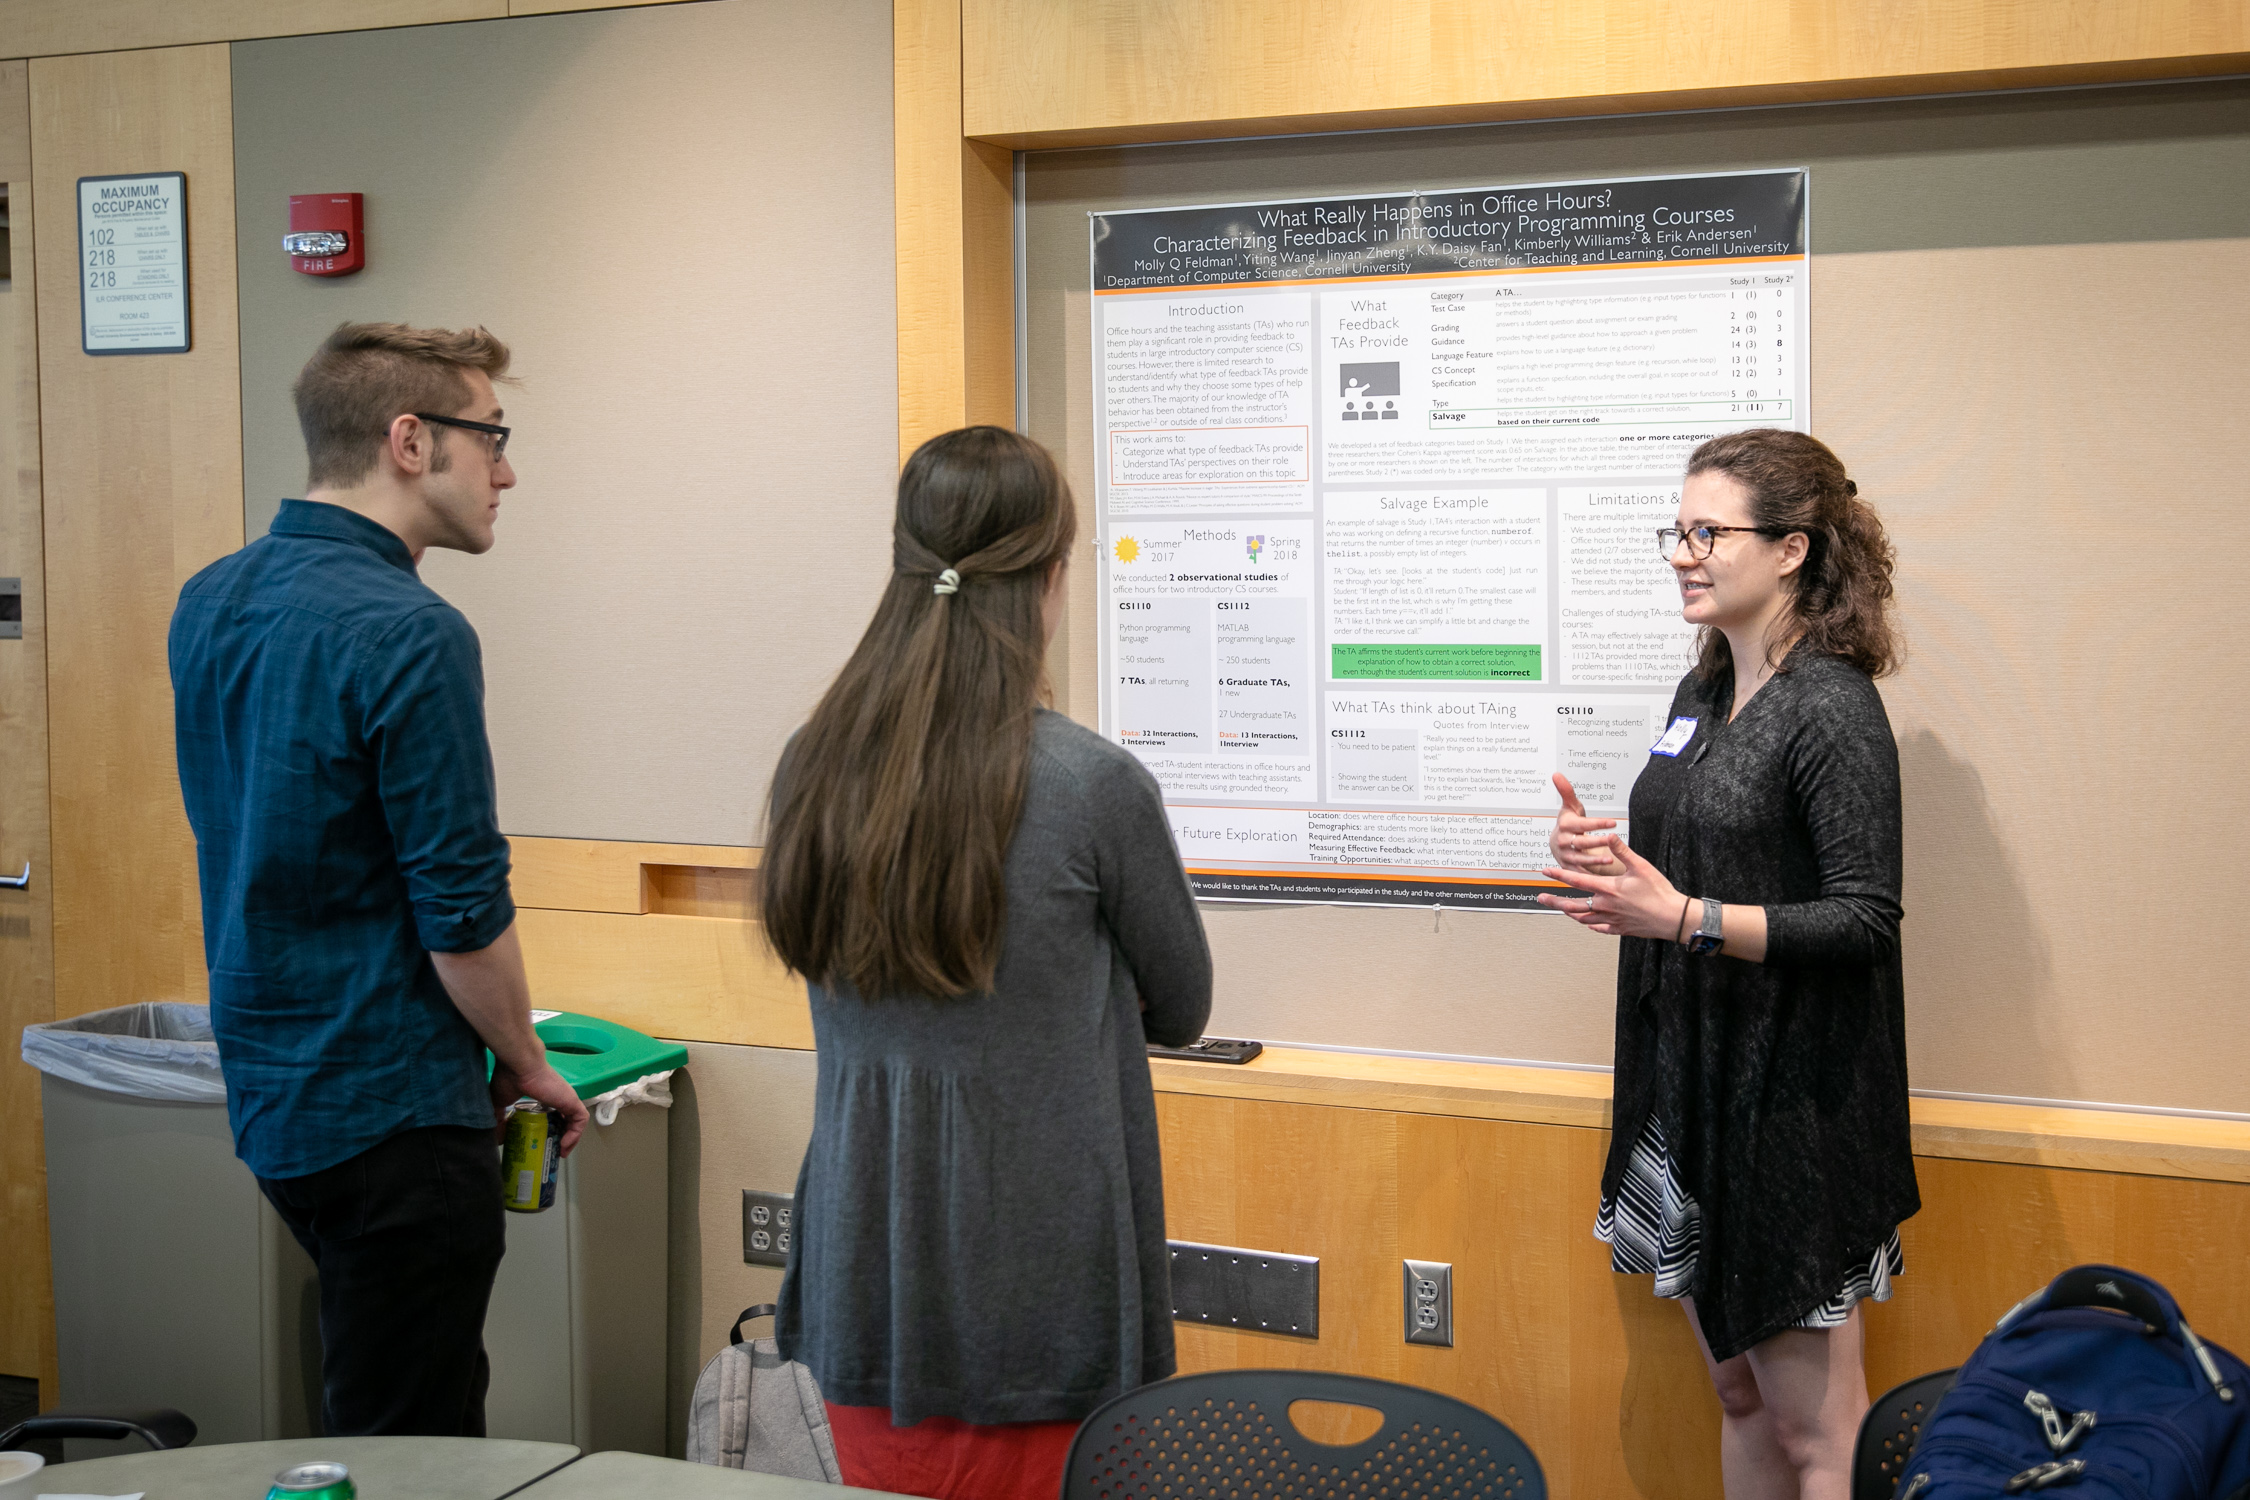 Molly Feldman presenting her Teaching as Research project